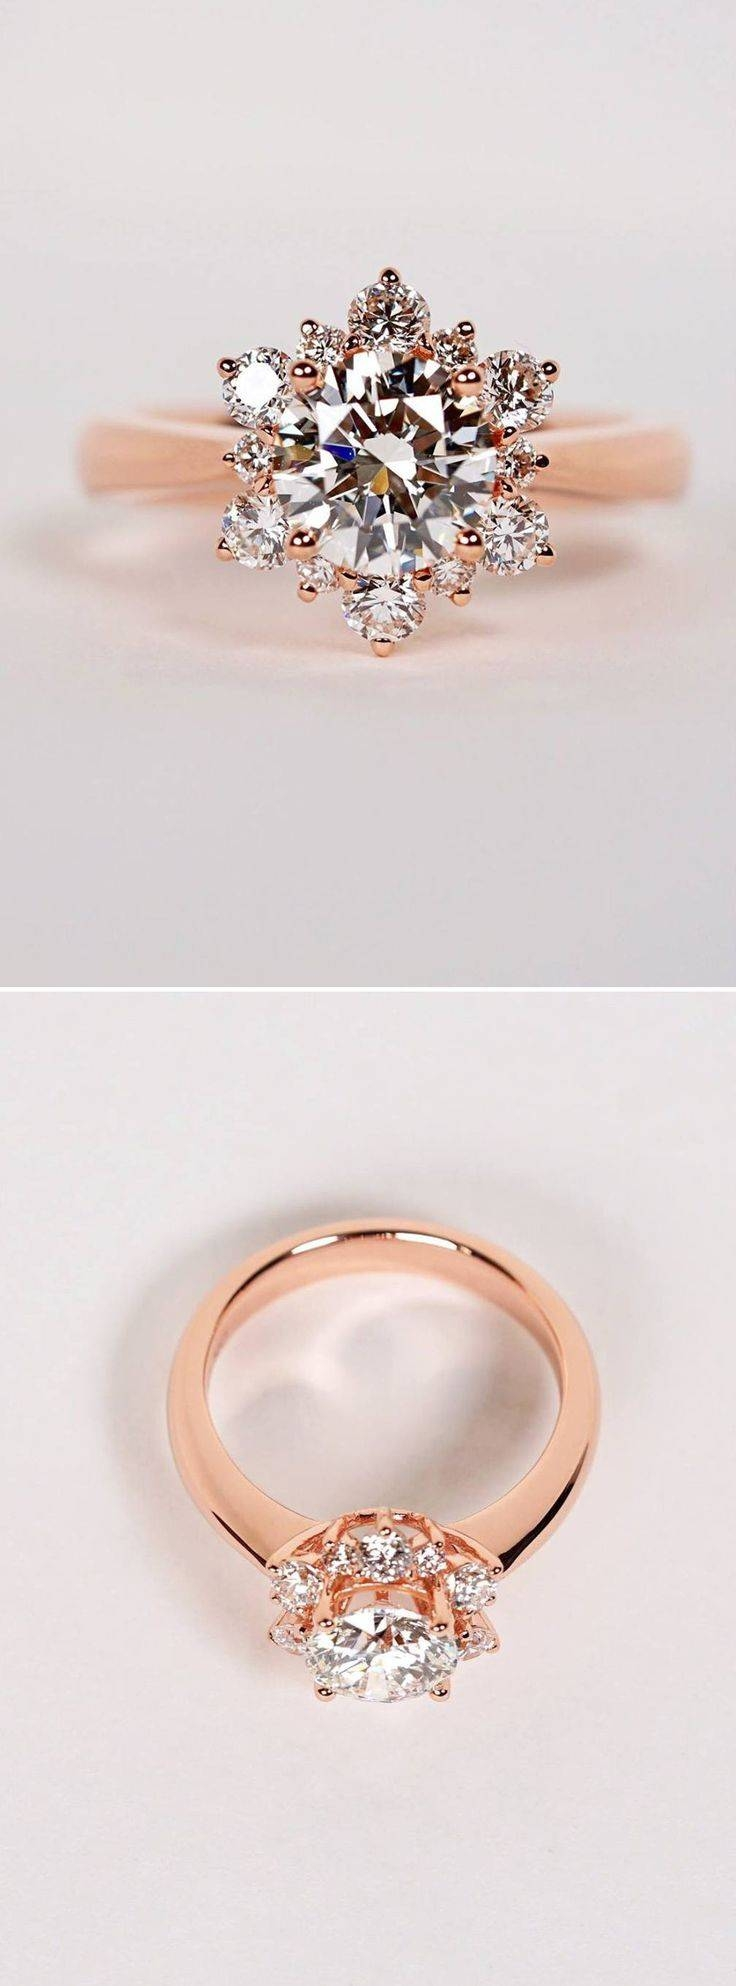 Engagement Rings : Wedding Rings Rose Gold Amazing Engagement In Light Pink Wedding Rings (View 6 of 15)